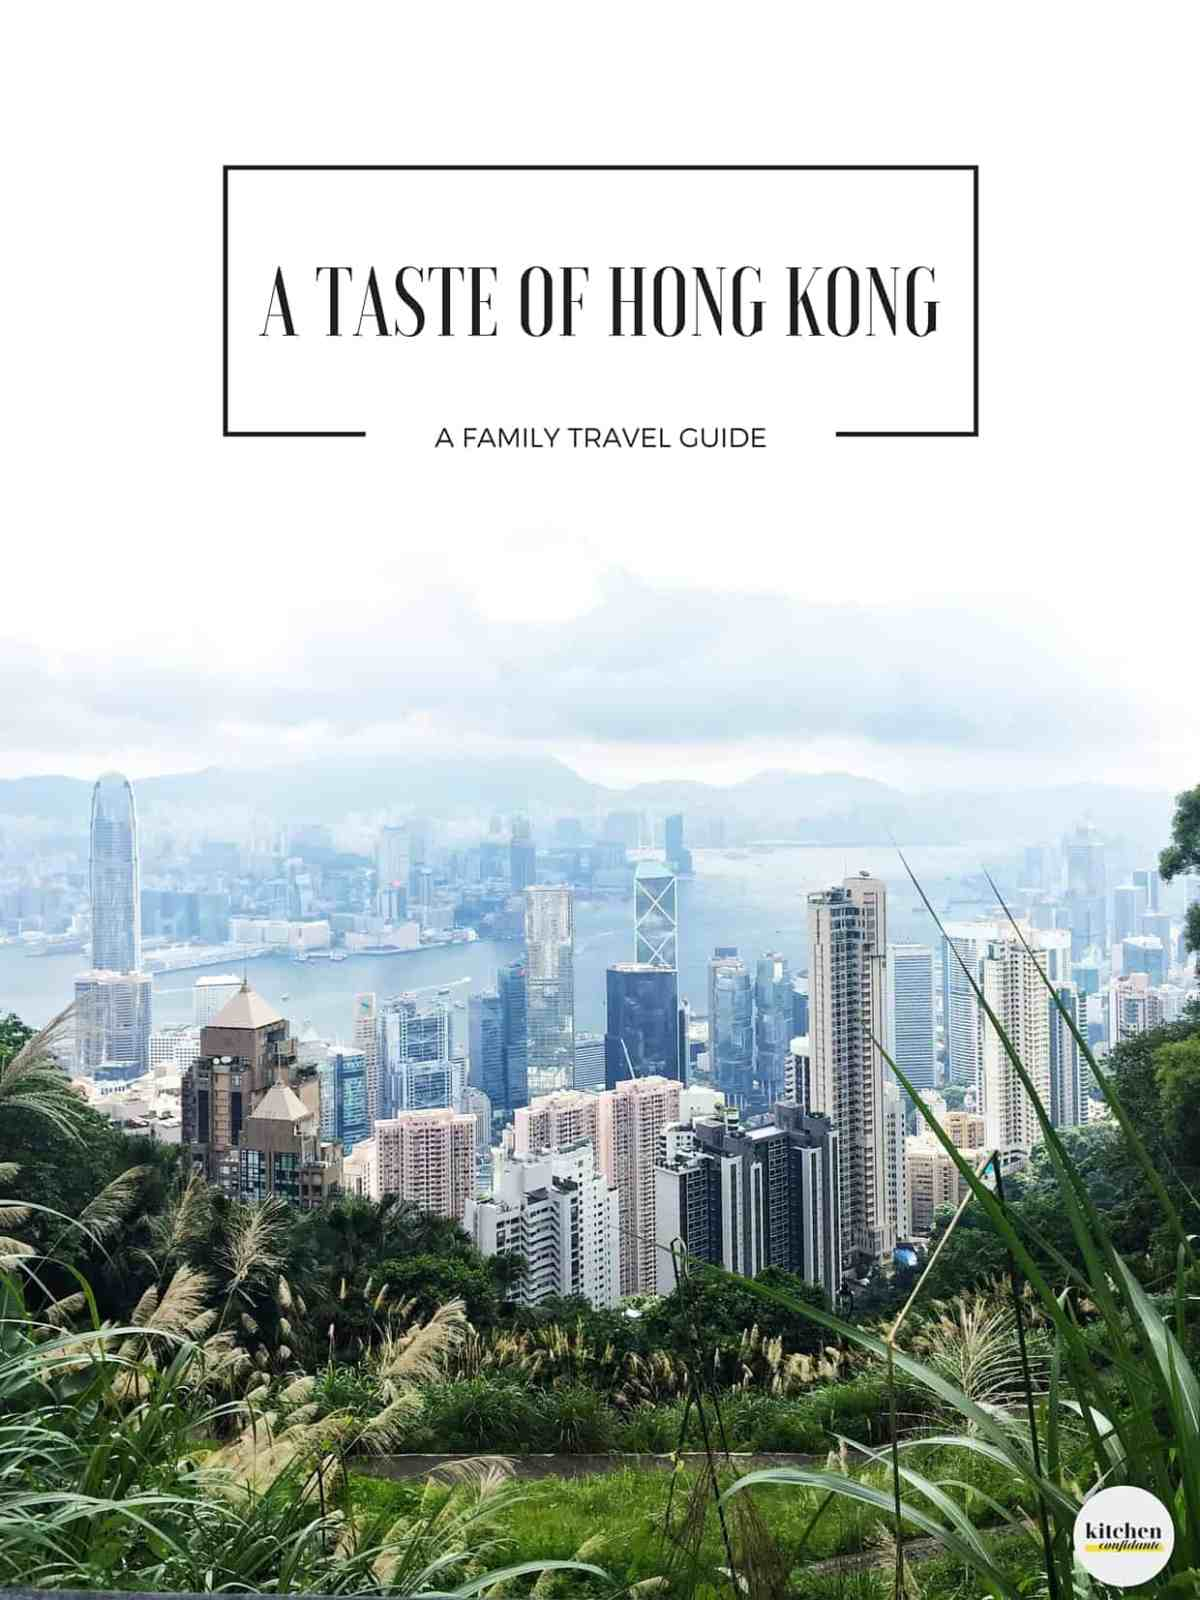 A Taste of Hong Kong- A Family Travel Guide // Planning a trip to Hong Kong? Come join me for our family's pick on places to savor, stay and play in Asia's World City!